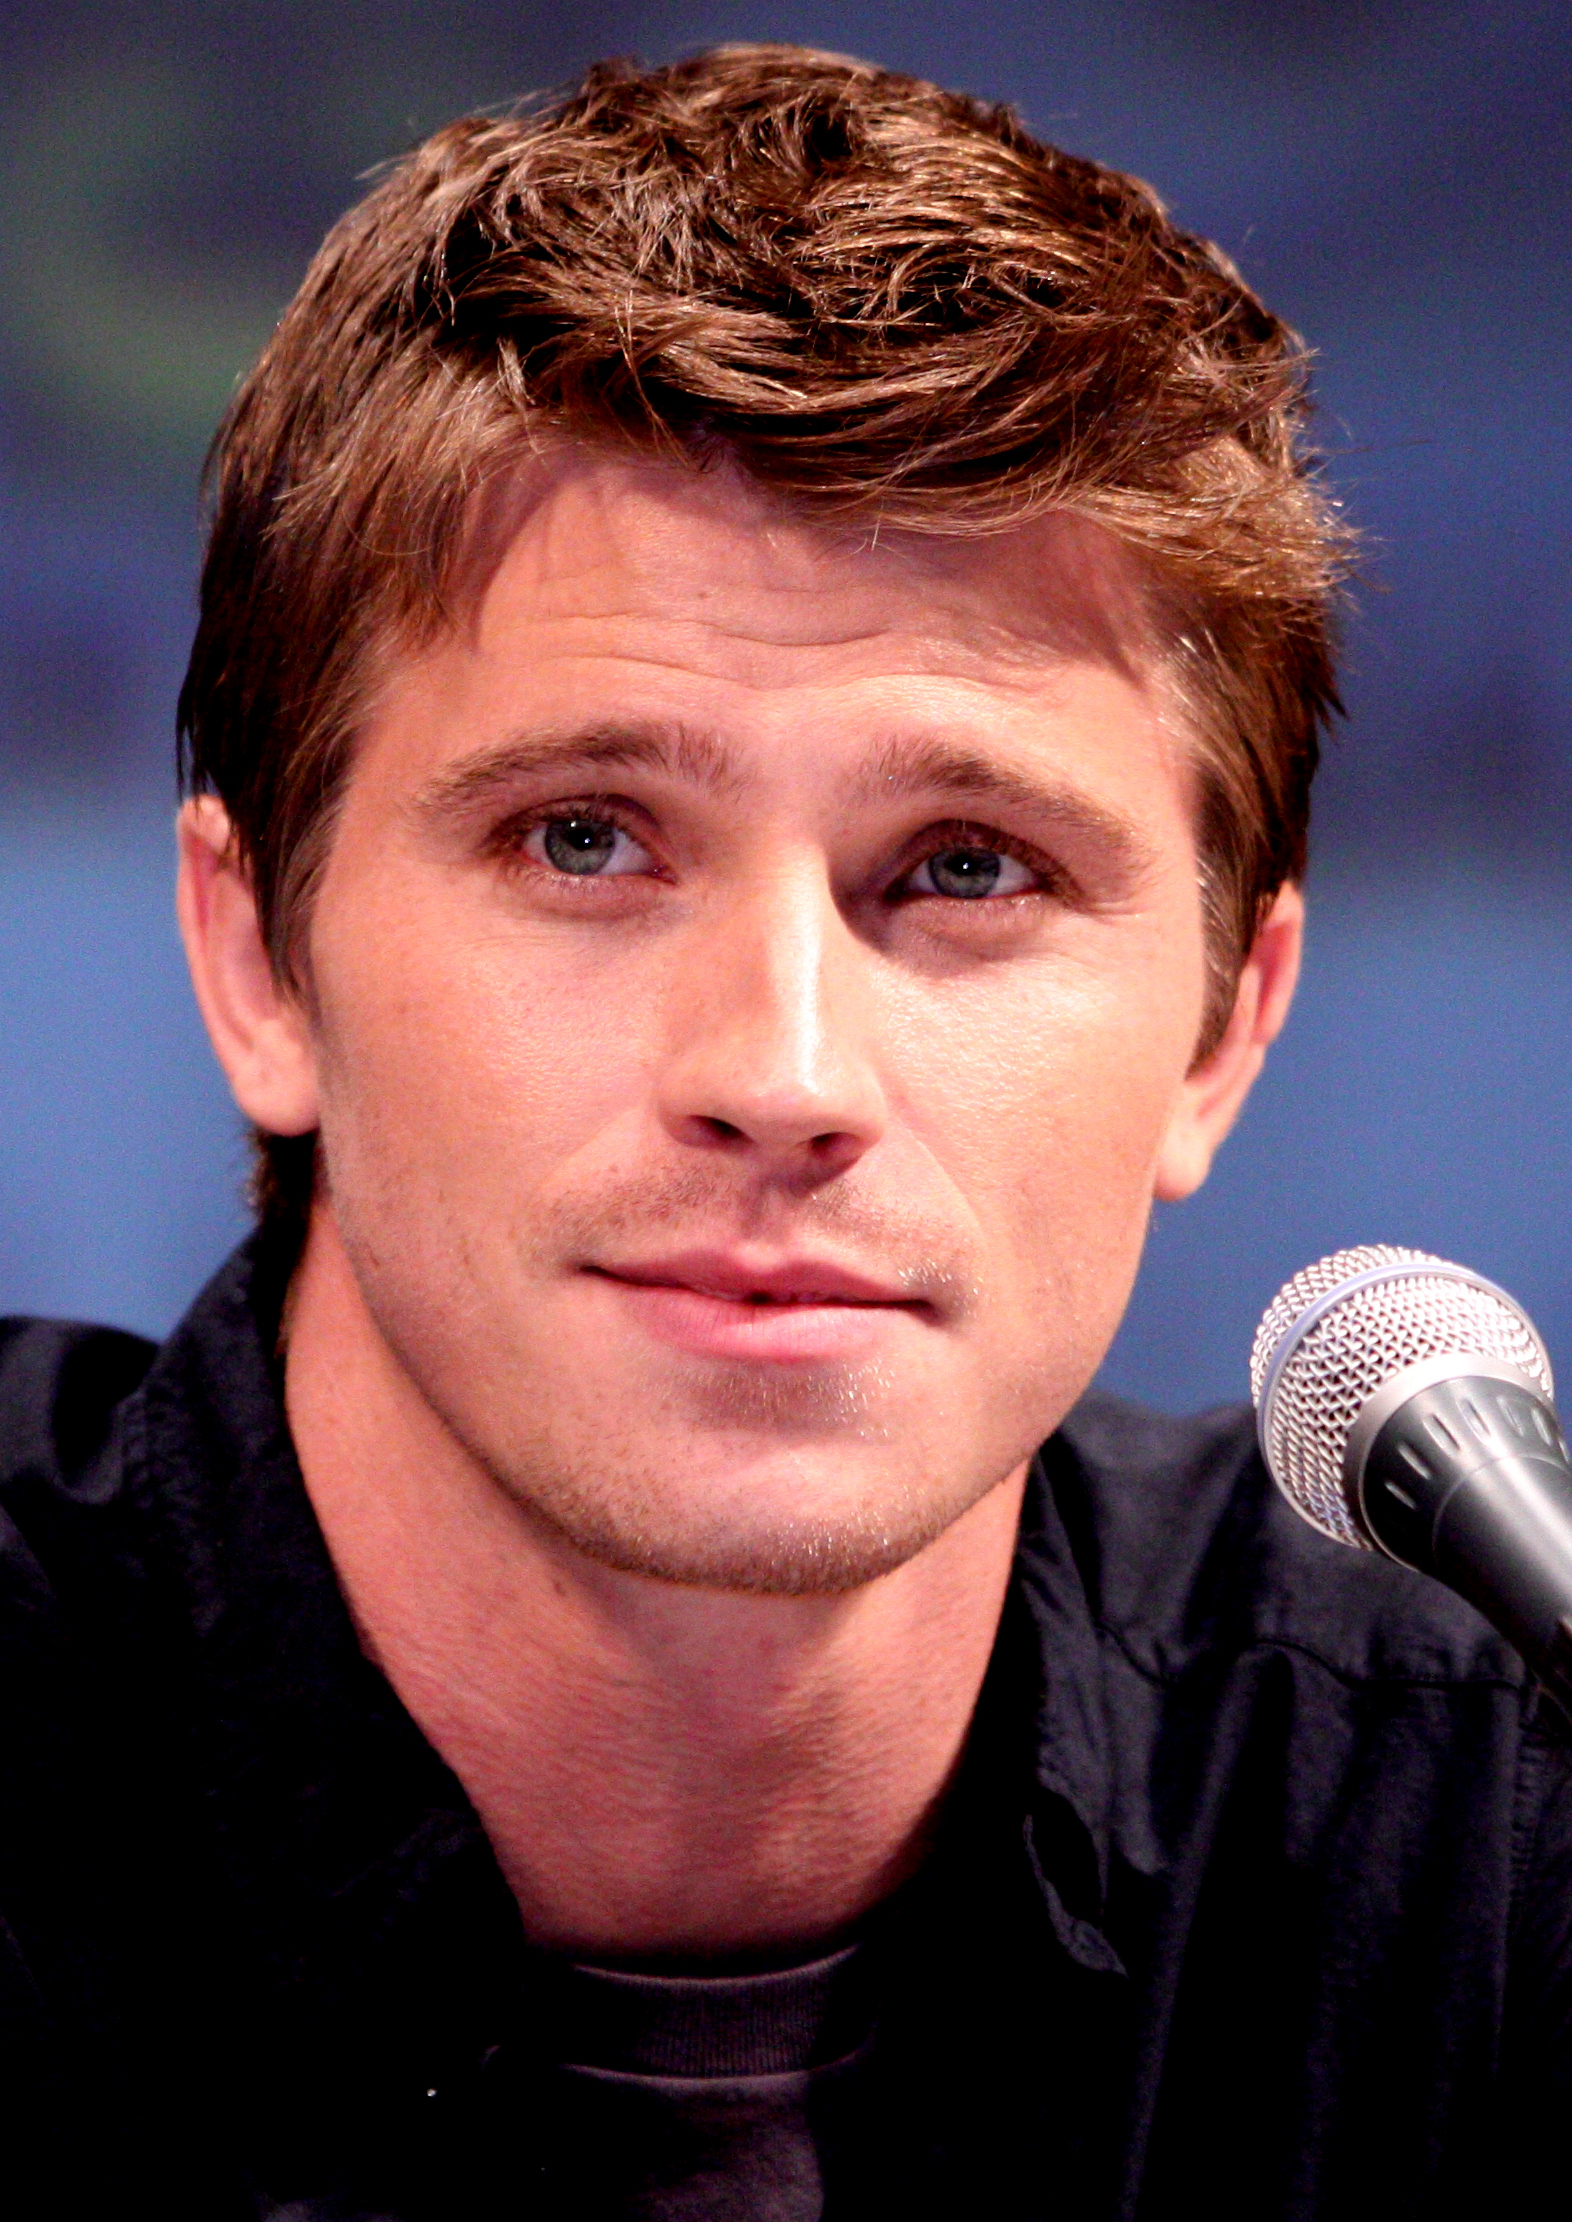 HQ Garrett Hedlund Wallpapers | File 2209.58Kb